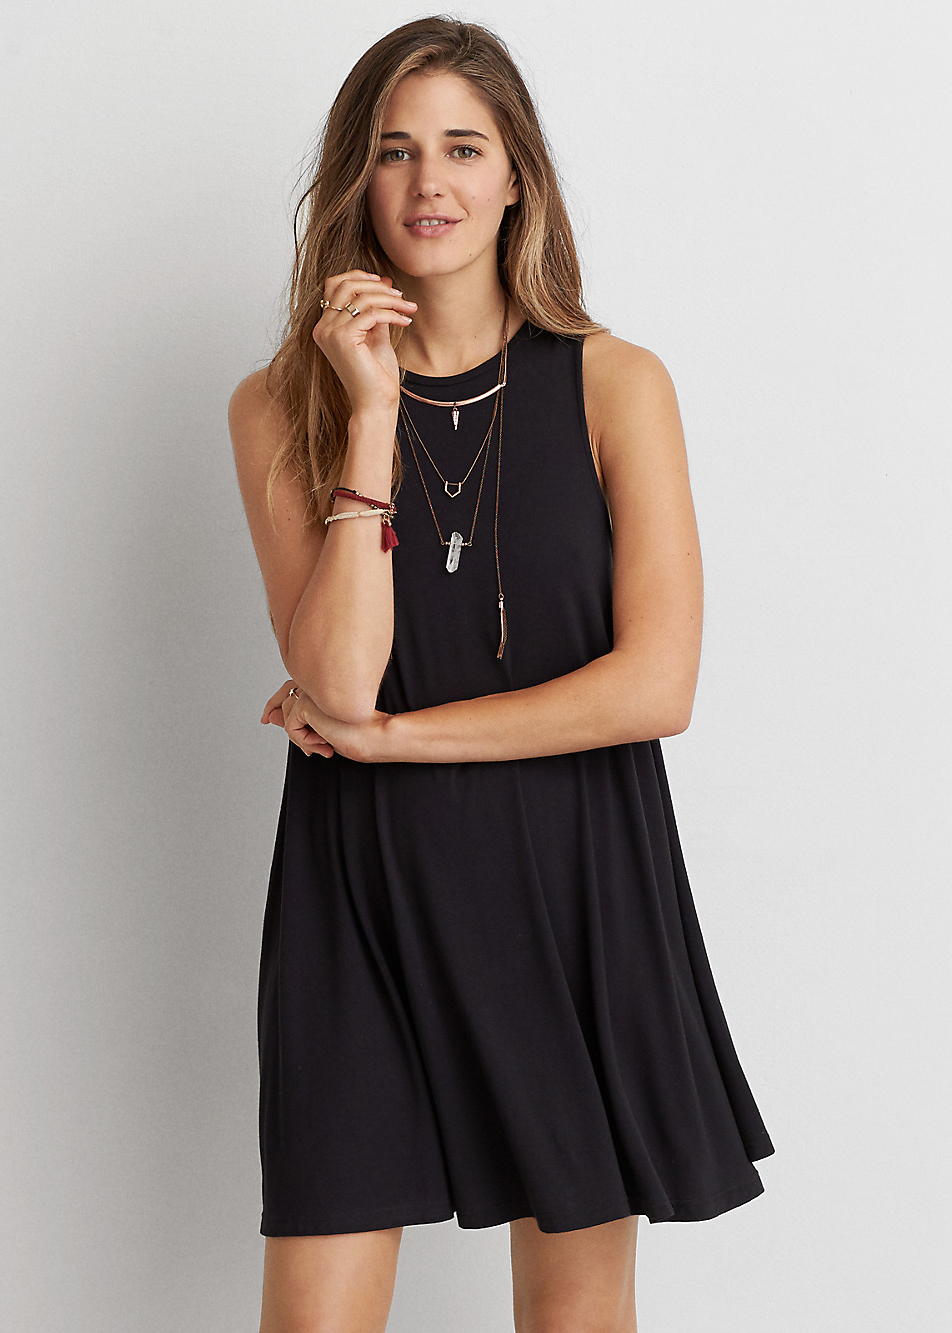 AEO Soft & Sexy Solid Swing Dress - Casual Little Black Dresses